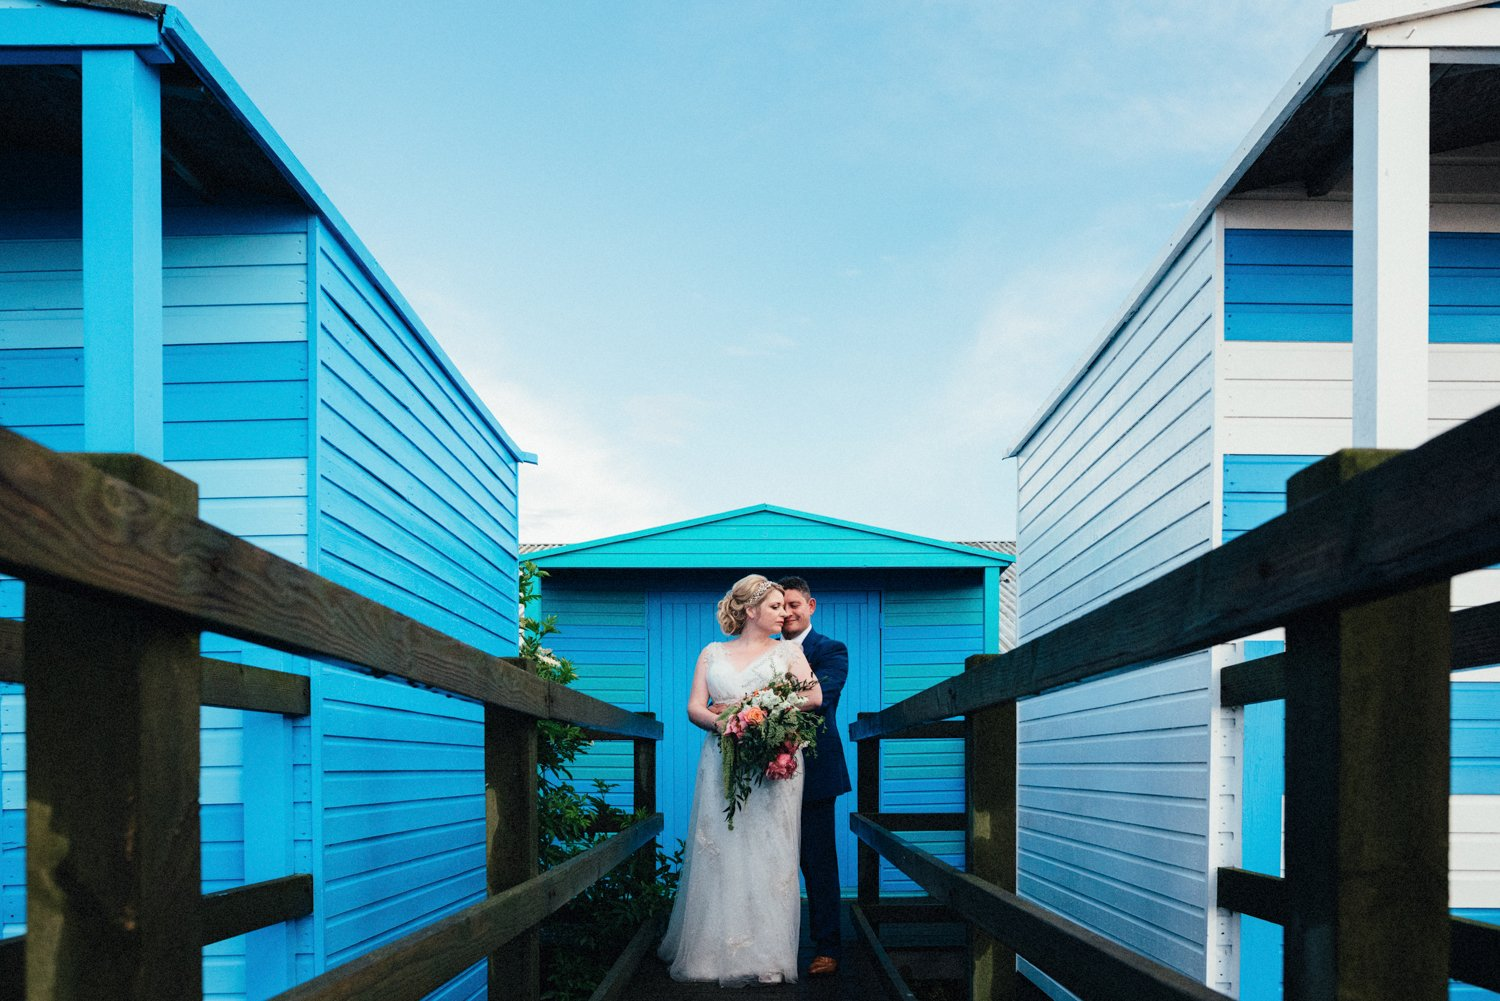 Creative beach hut wedding potrait